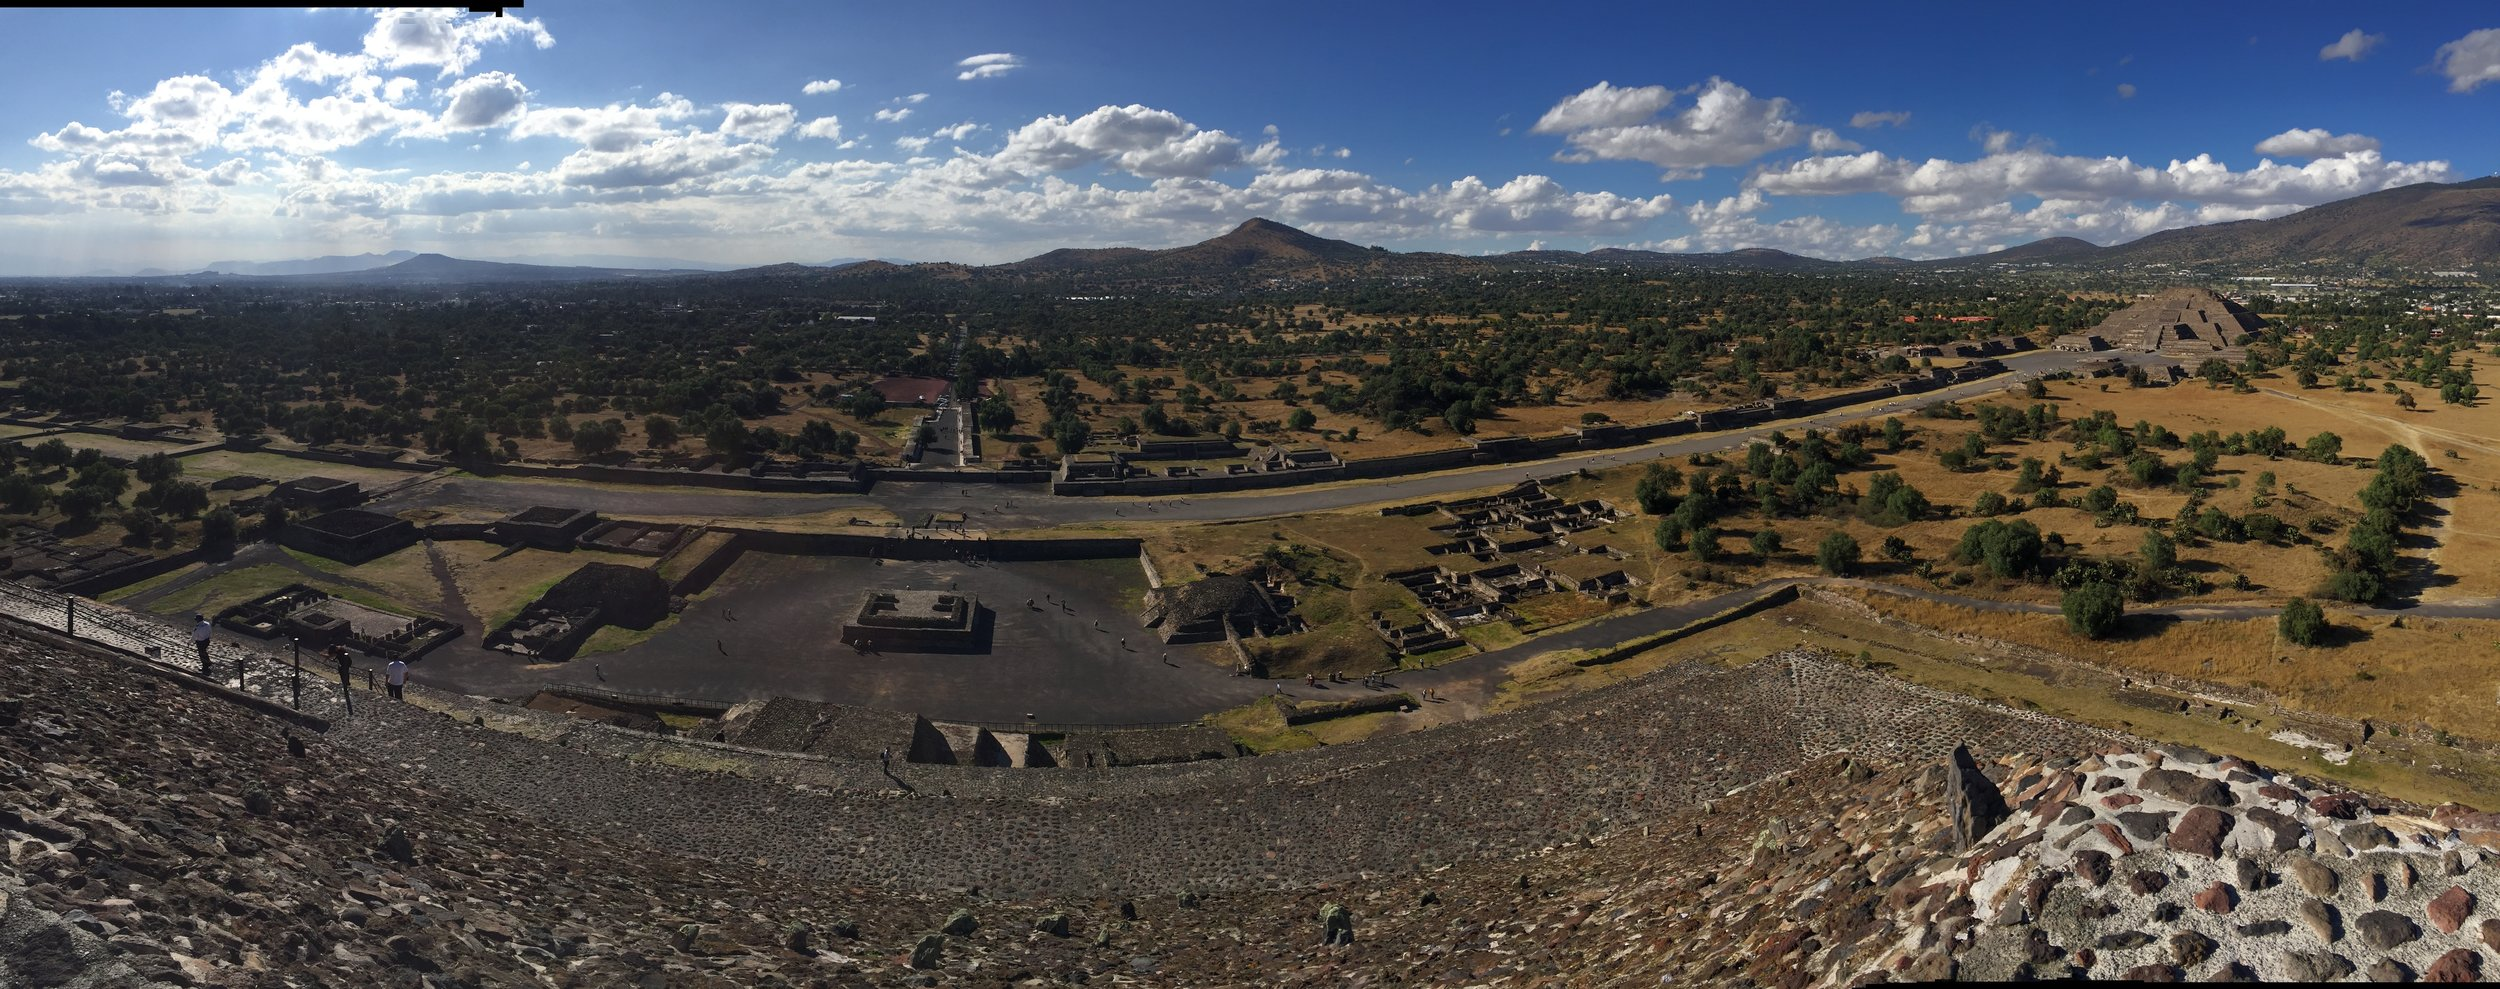 View from on top of the pyramid